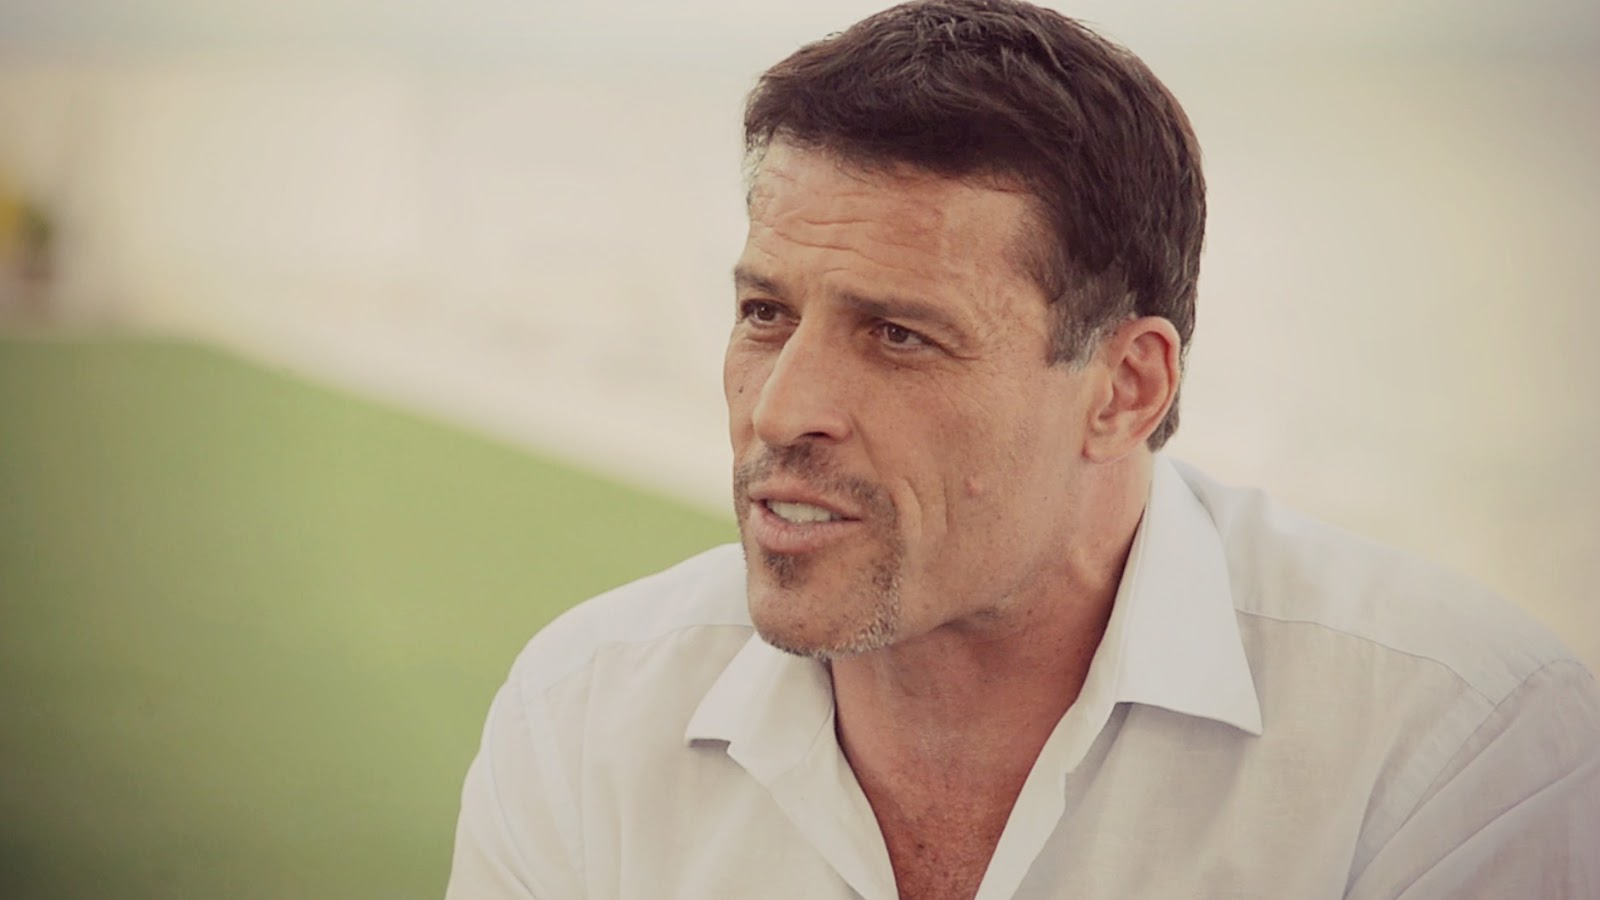 anthony robbins, Coaching, money, motivation, Robbins tony, self-sabotage, success, Tony Robbins, tony robbins breakthrough, tony robbins hungry, tony robbins motivation, tony robbins relationships